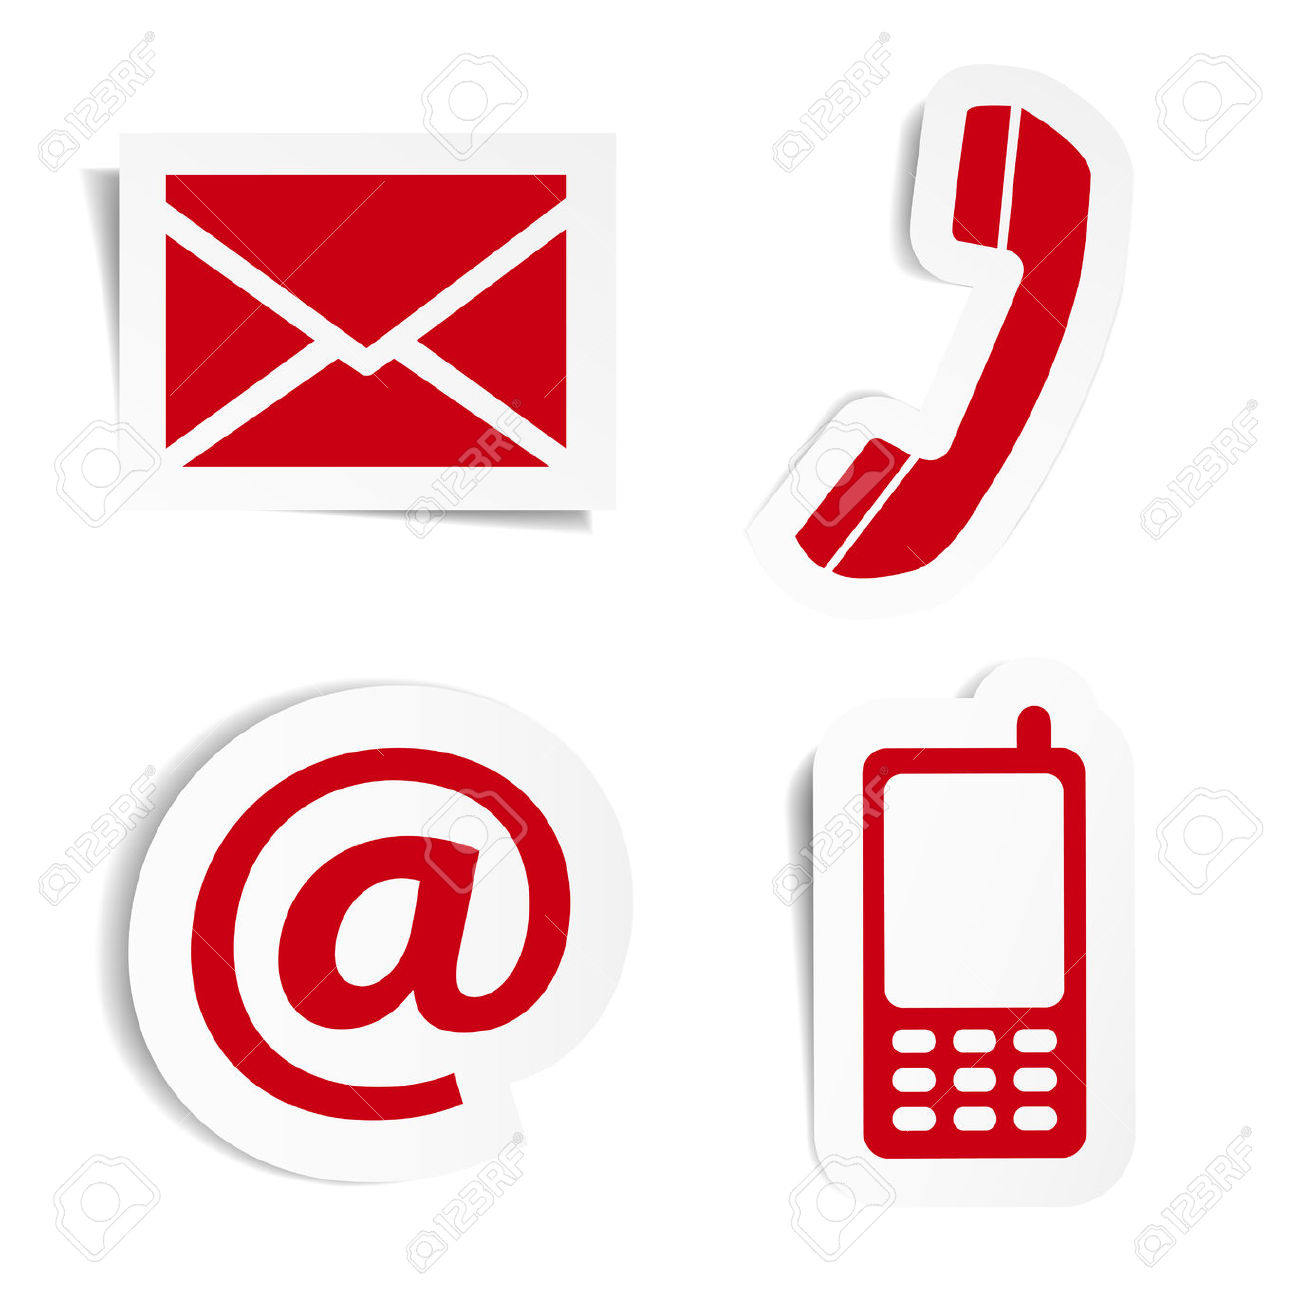 Contact Us Red >> 24549414-website-and-internet-contact-us-red-icons-set-and